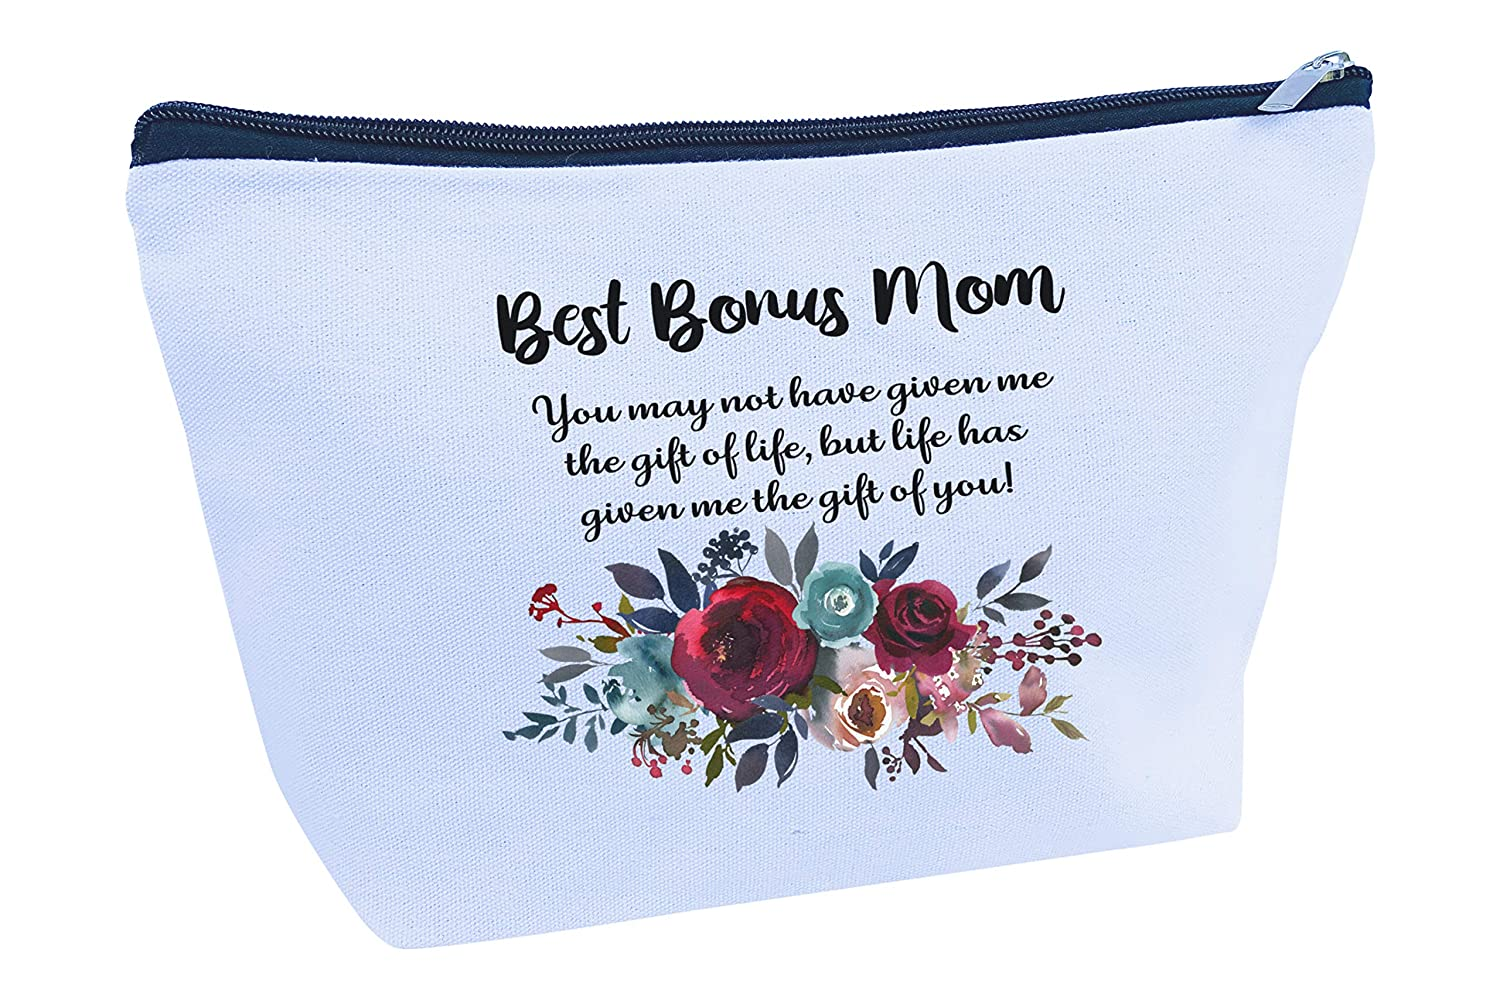 Gifts for Mom Stepmom Mother in Law Large Travel Makeup Bag Birthday Christmas Holiday MB104